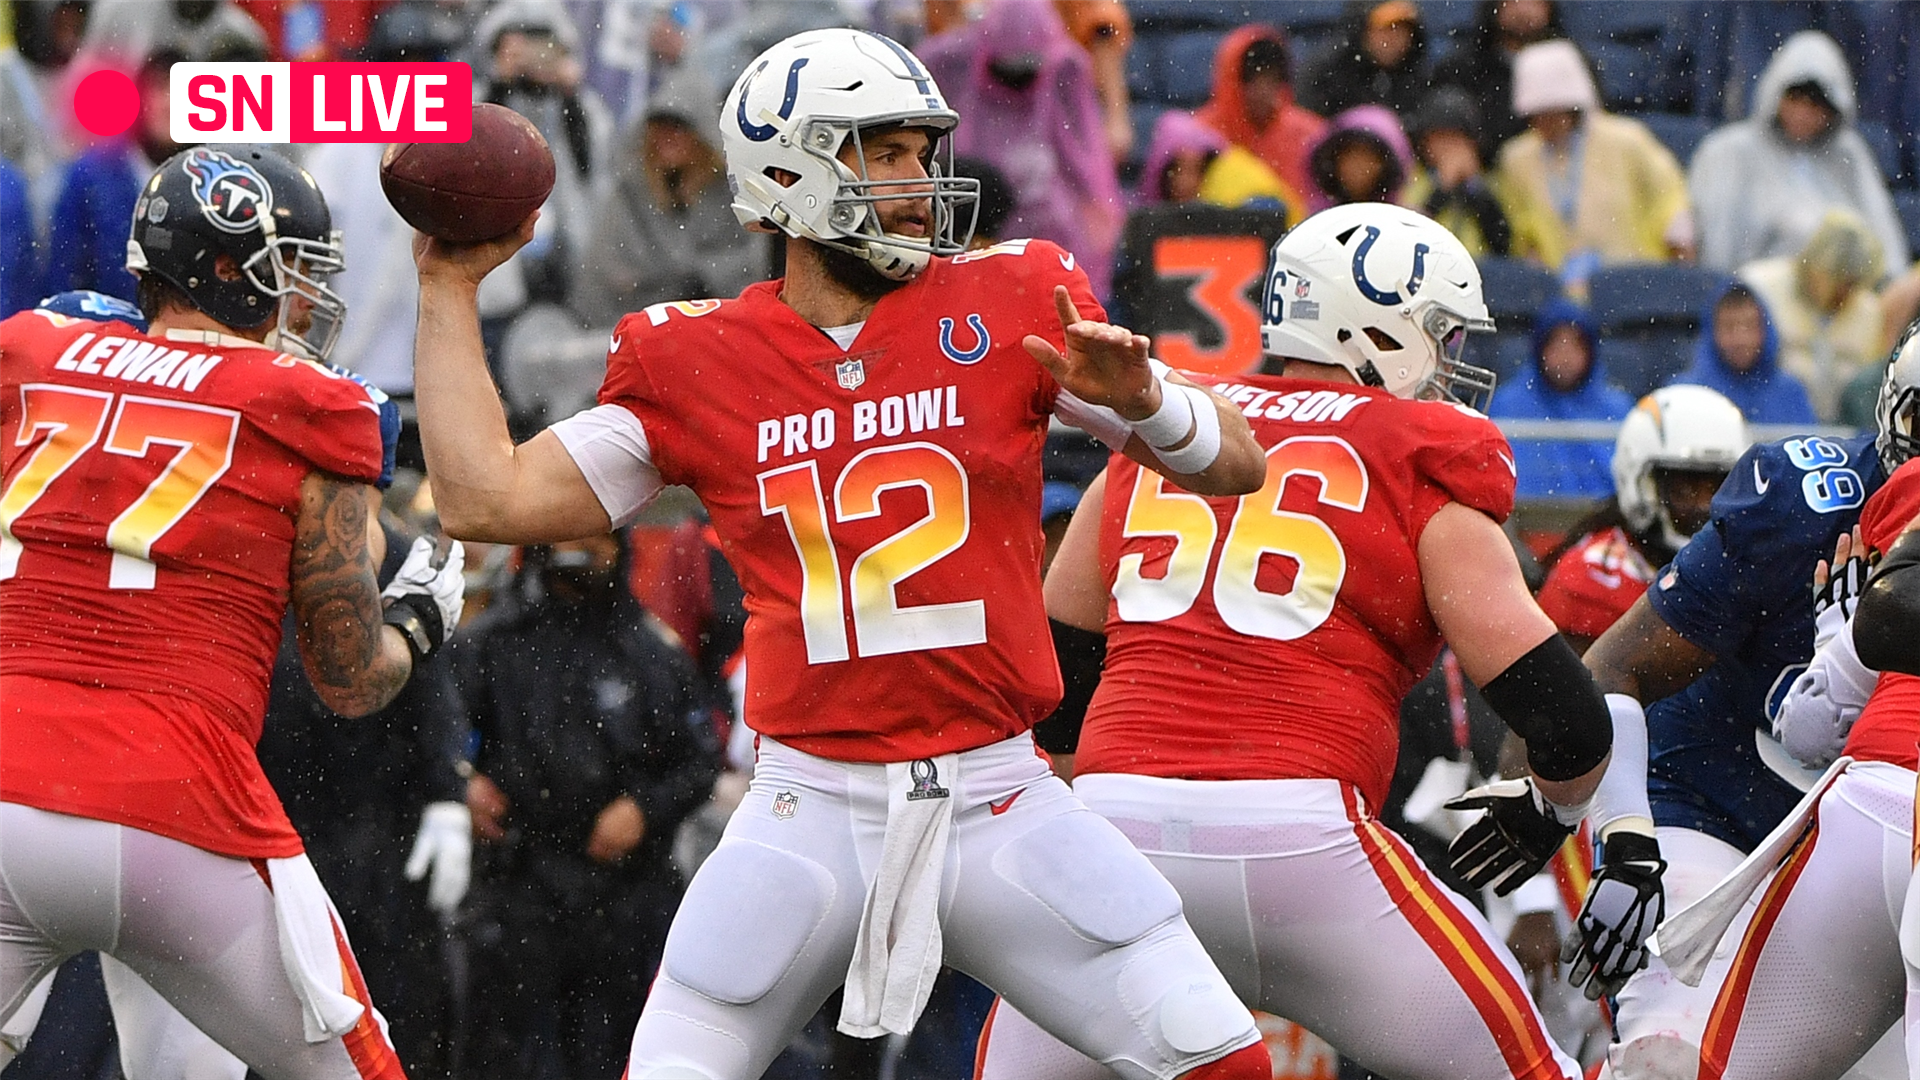 Pro Bowl 2019 Results Highlights From Showcase Of Nfl Stars Nfl